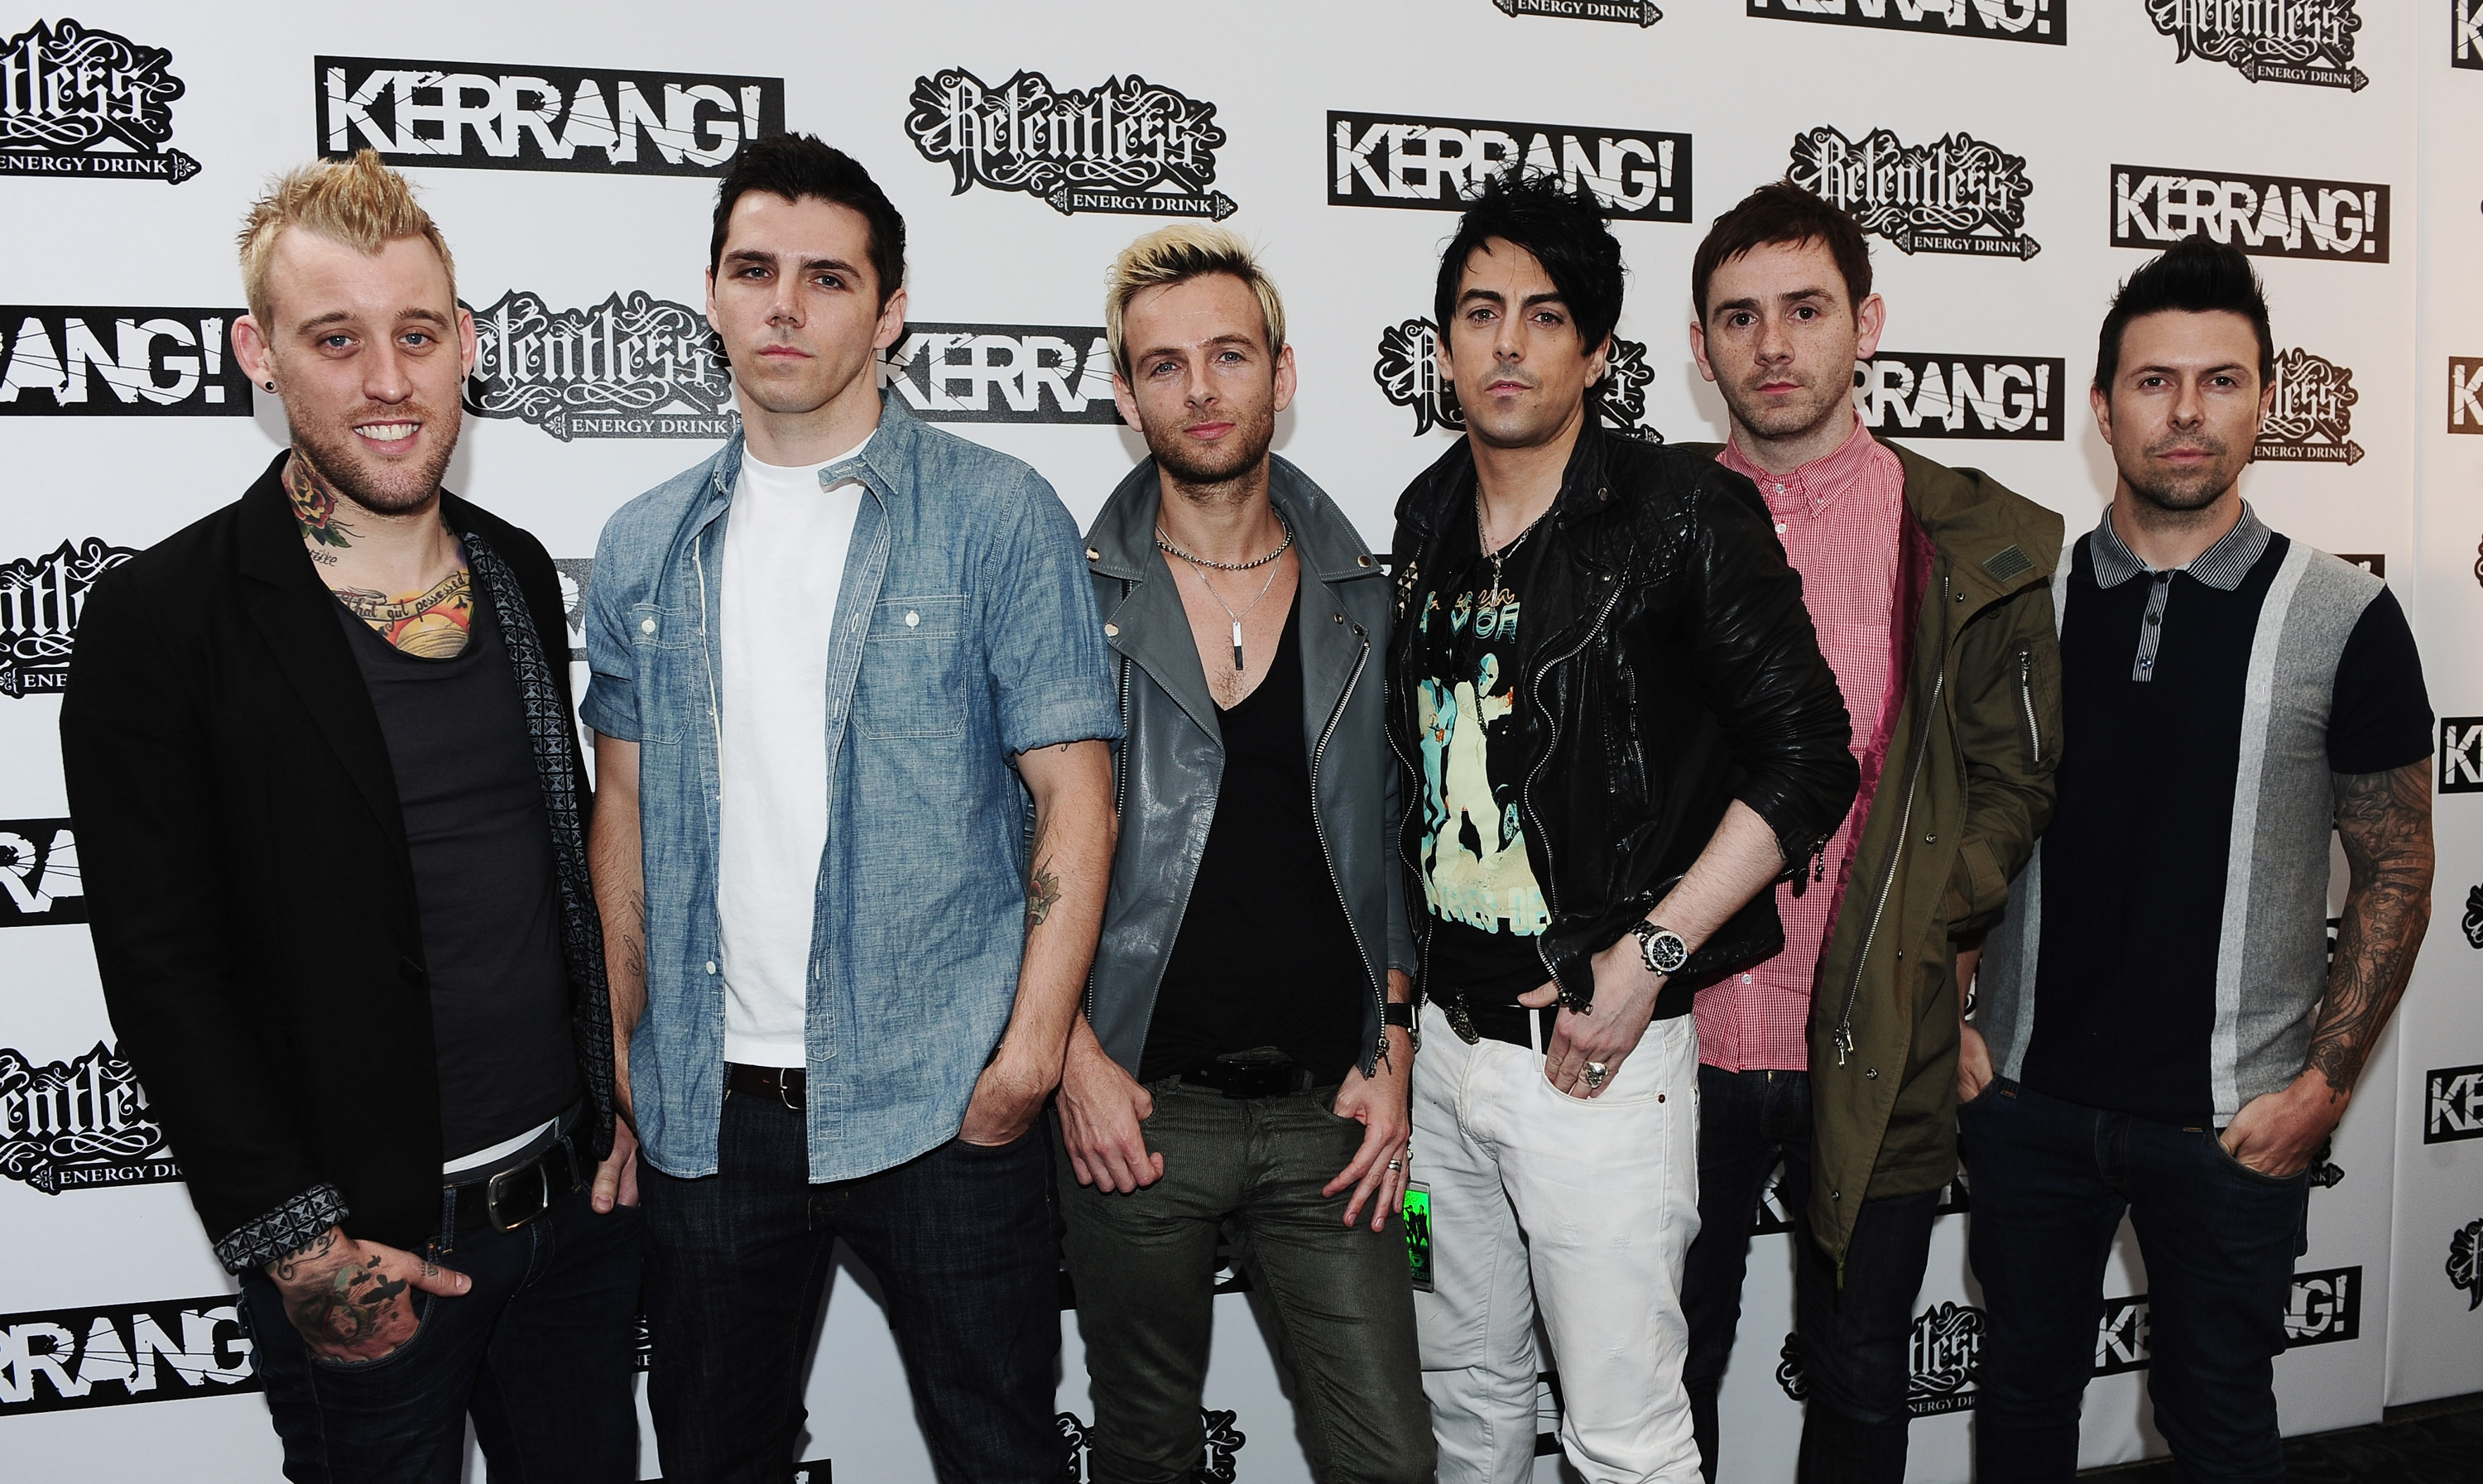 Former members of Lostprophets discuss paedophile Ian Watkins: 'How could you know?'